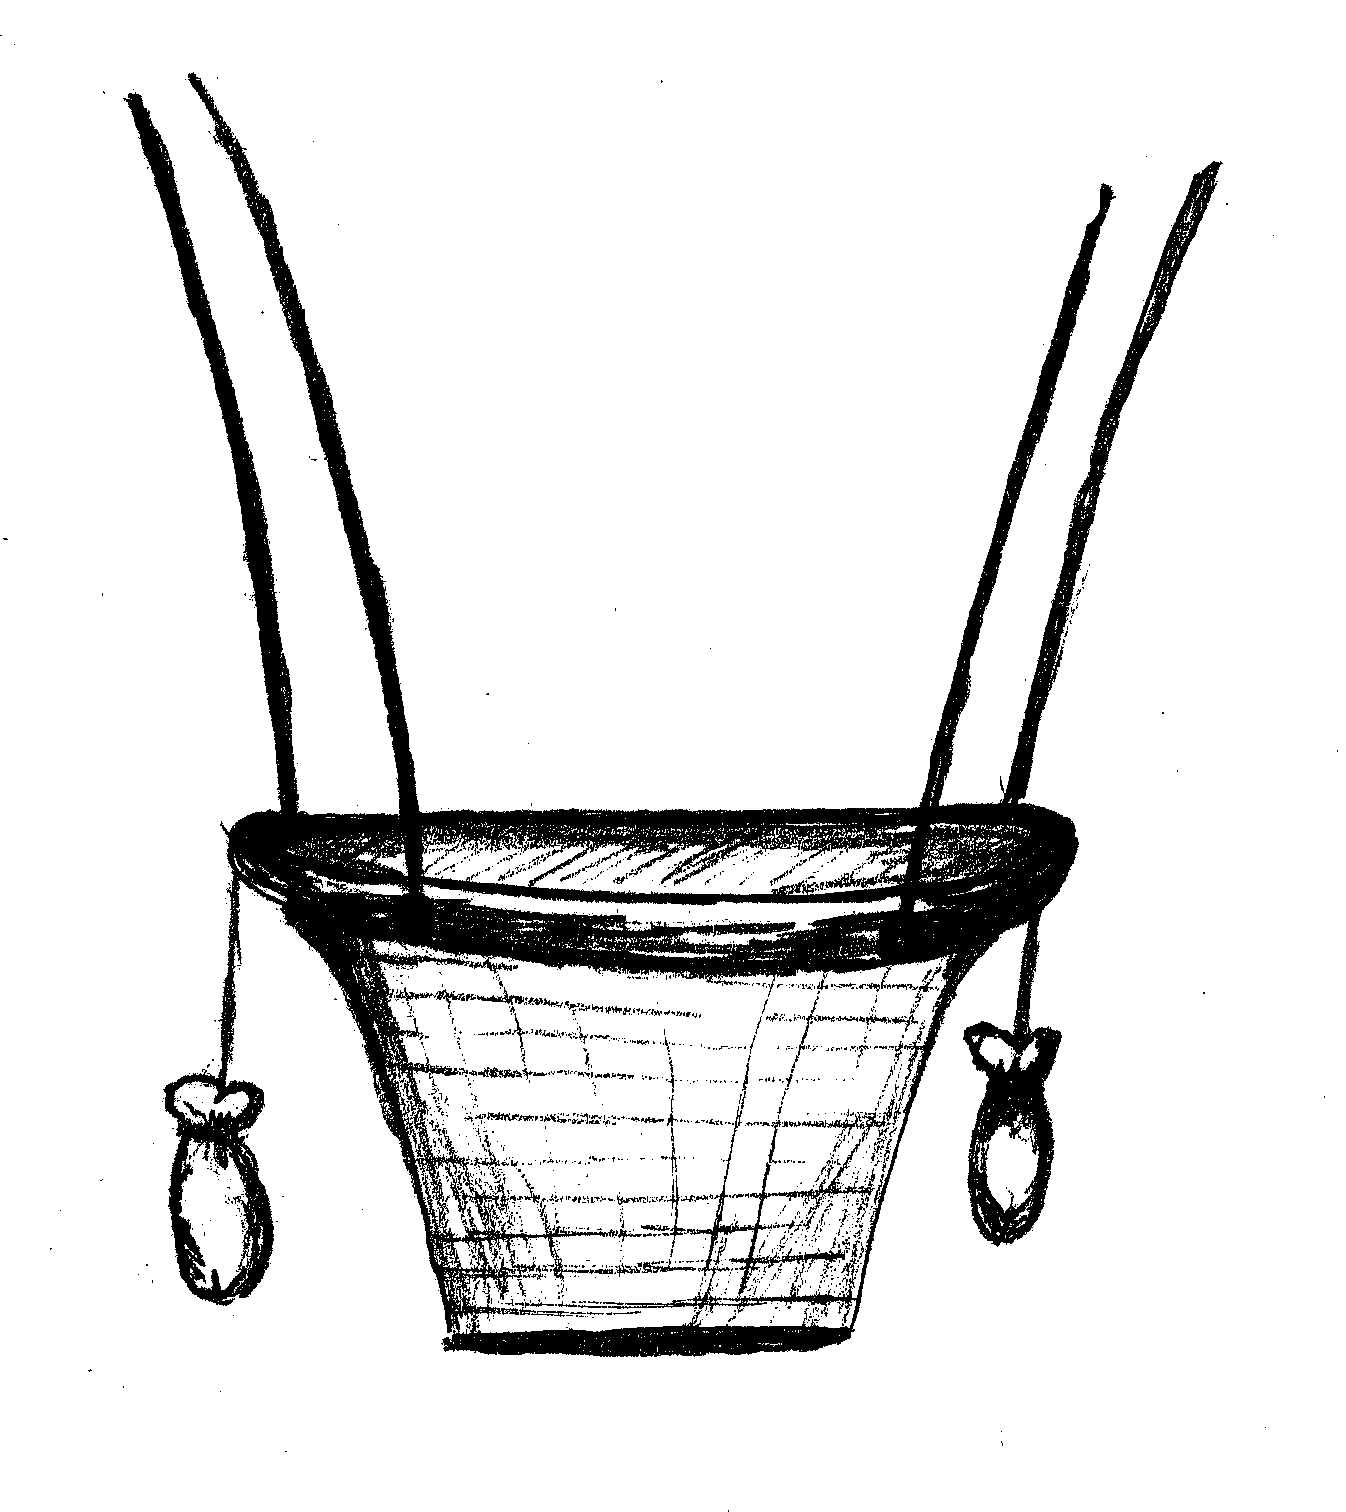 Weaving drawing basket design. Collection of air